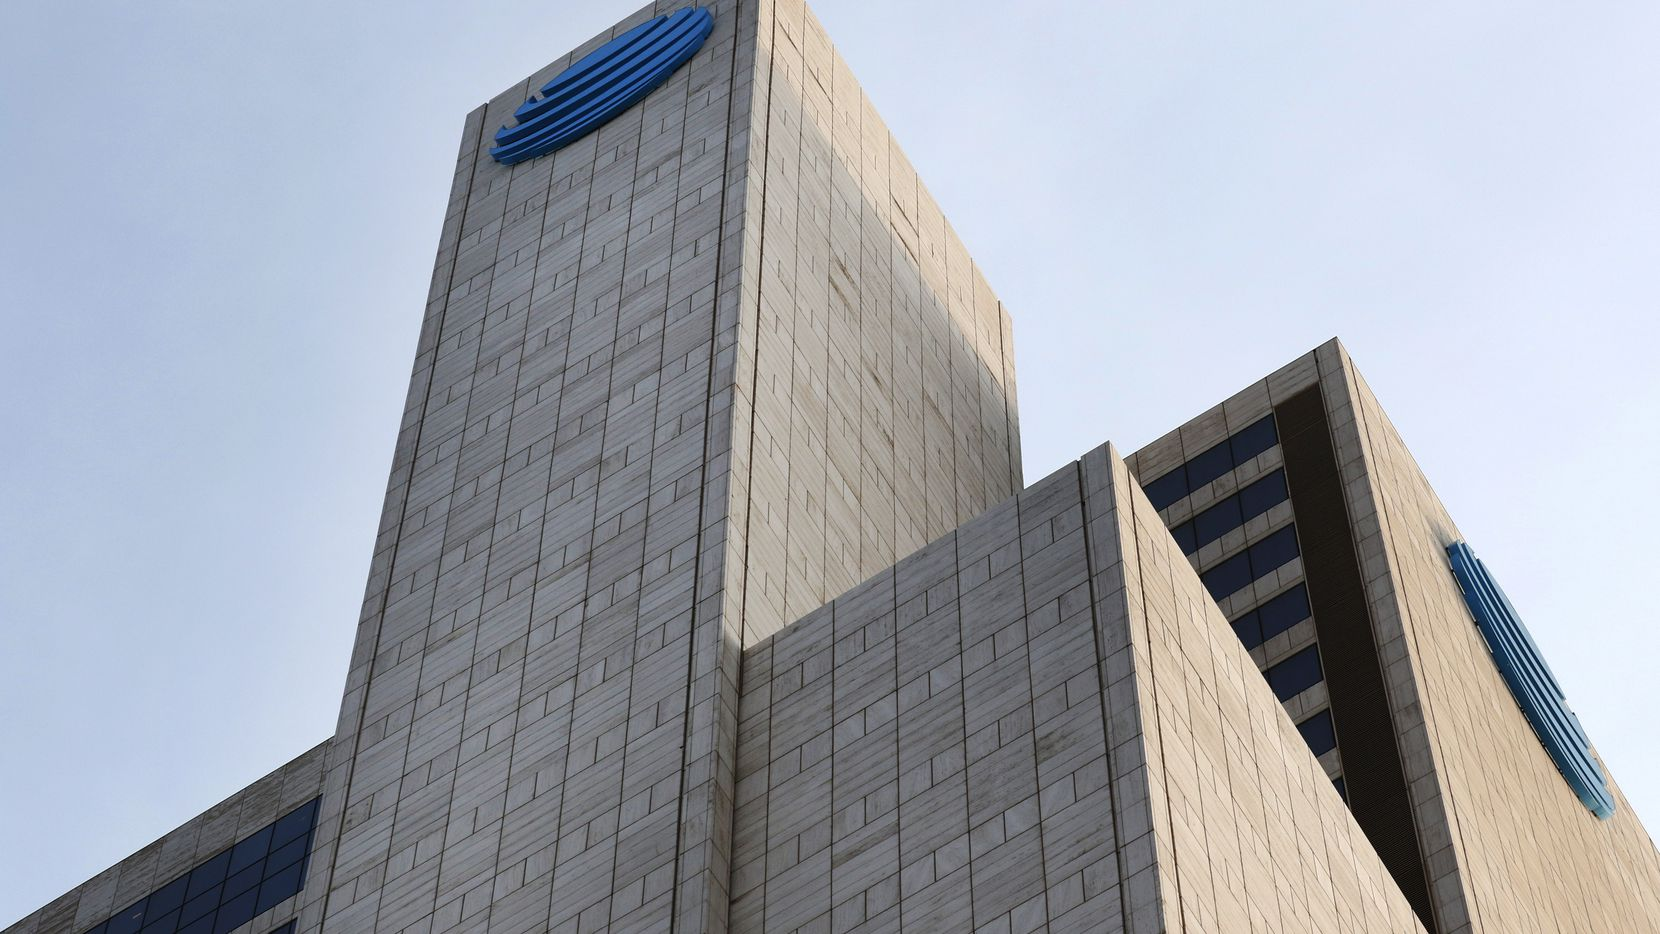 AT&T is adding thousands of exterior lights to its downtown Dallas headquarters tower.